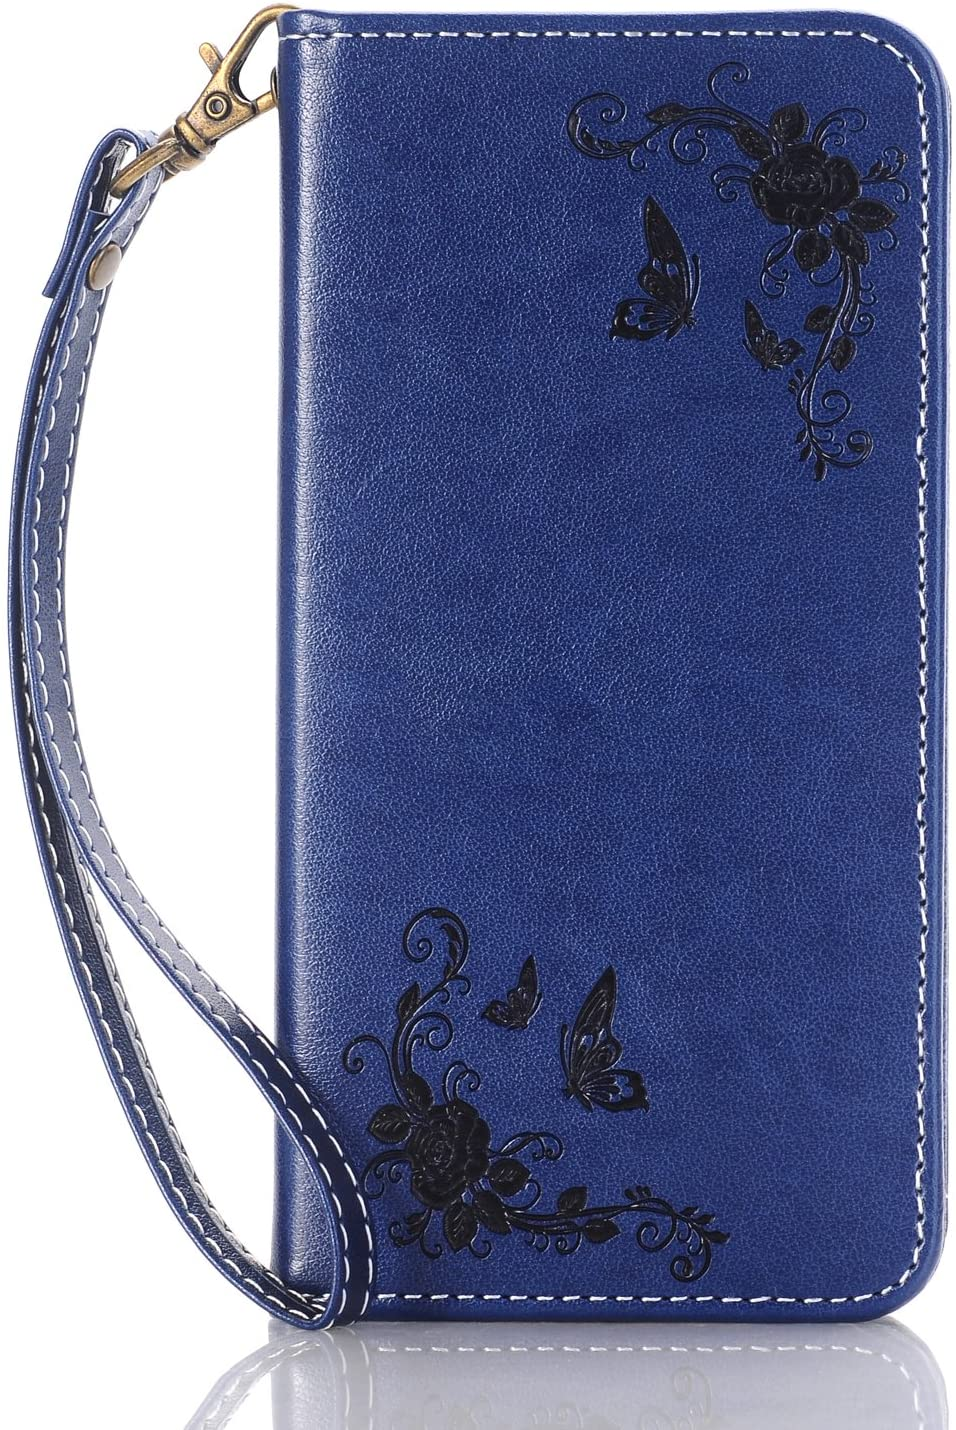 iPhone 8 Case, Dfly-US Invisible Strong Magnetic Buckle Style Fancy PU Leather Embossing Rose and Butterfly Pattern Automatic Adsorption Flip Wallet Cover for Apple iPhone 8 (2017), Dark Blue